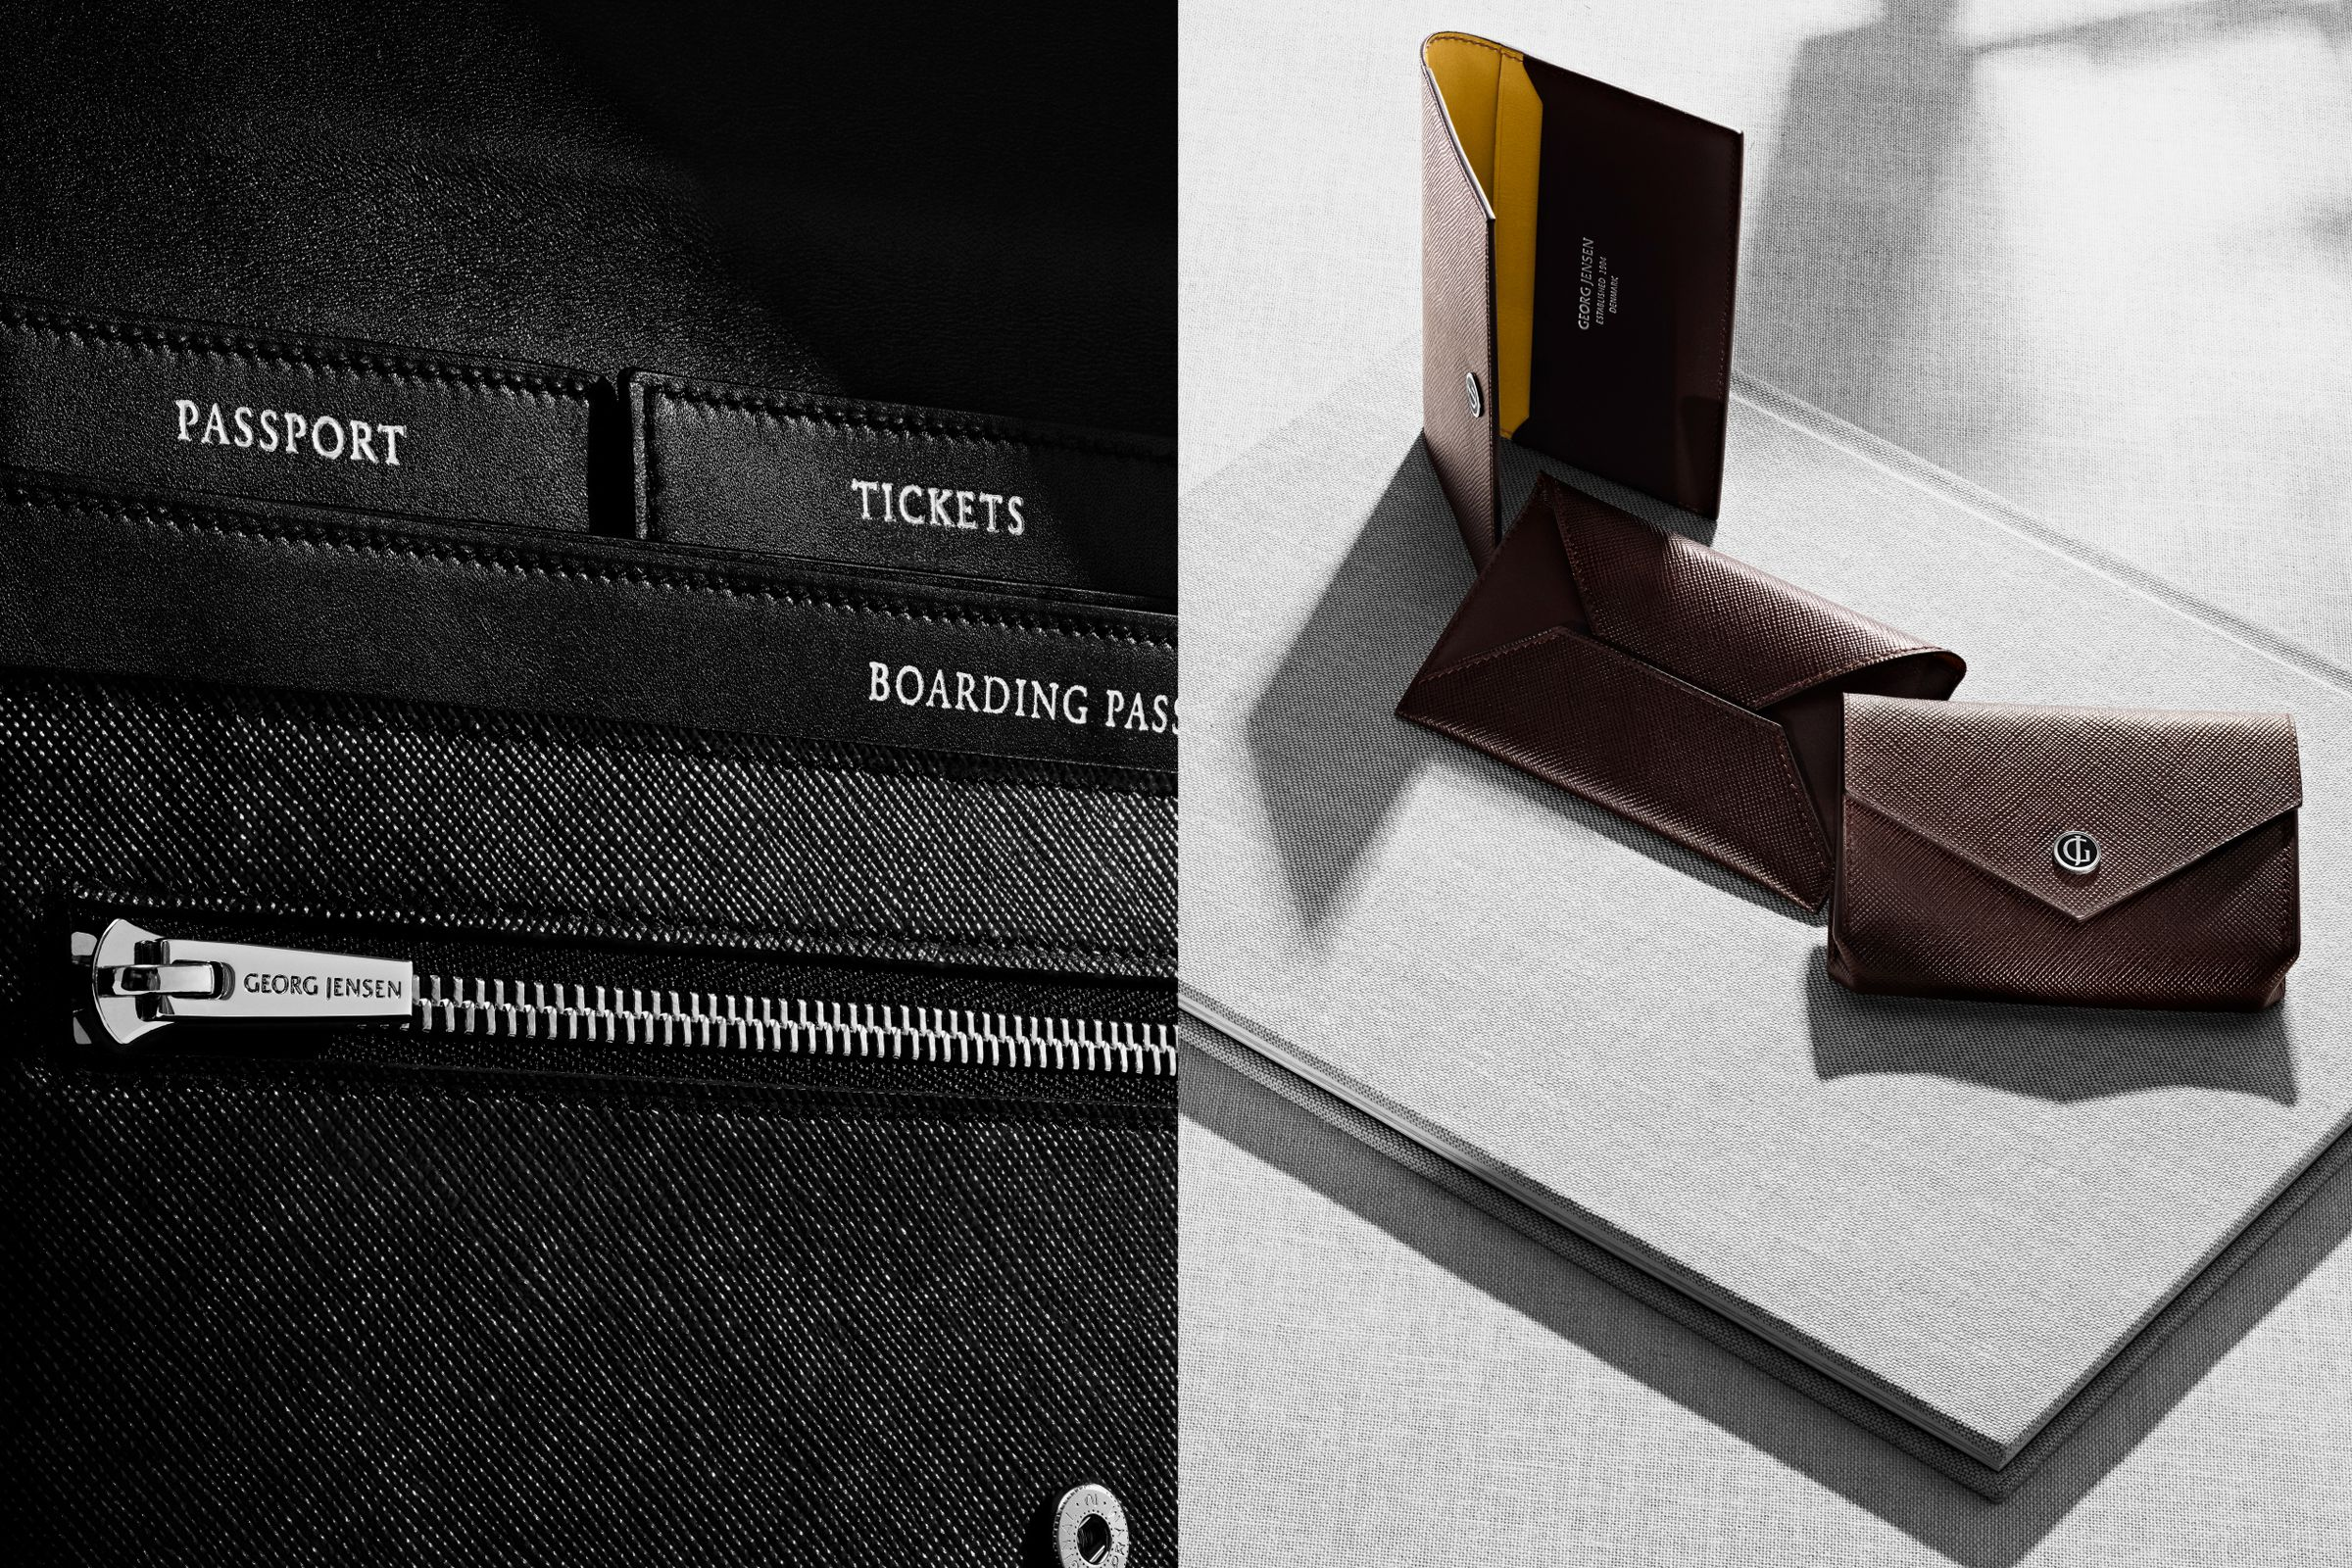 Georg Jensen small leather goods photographed by Toby McFarlan Pond